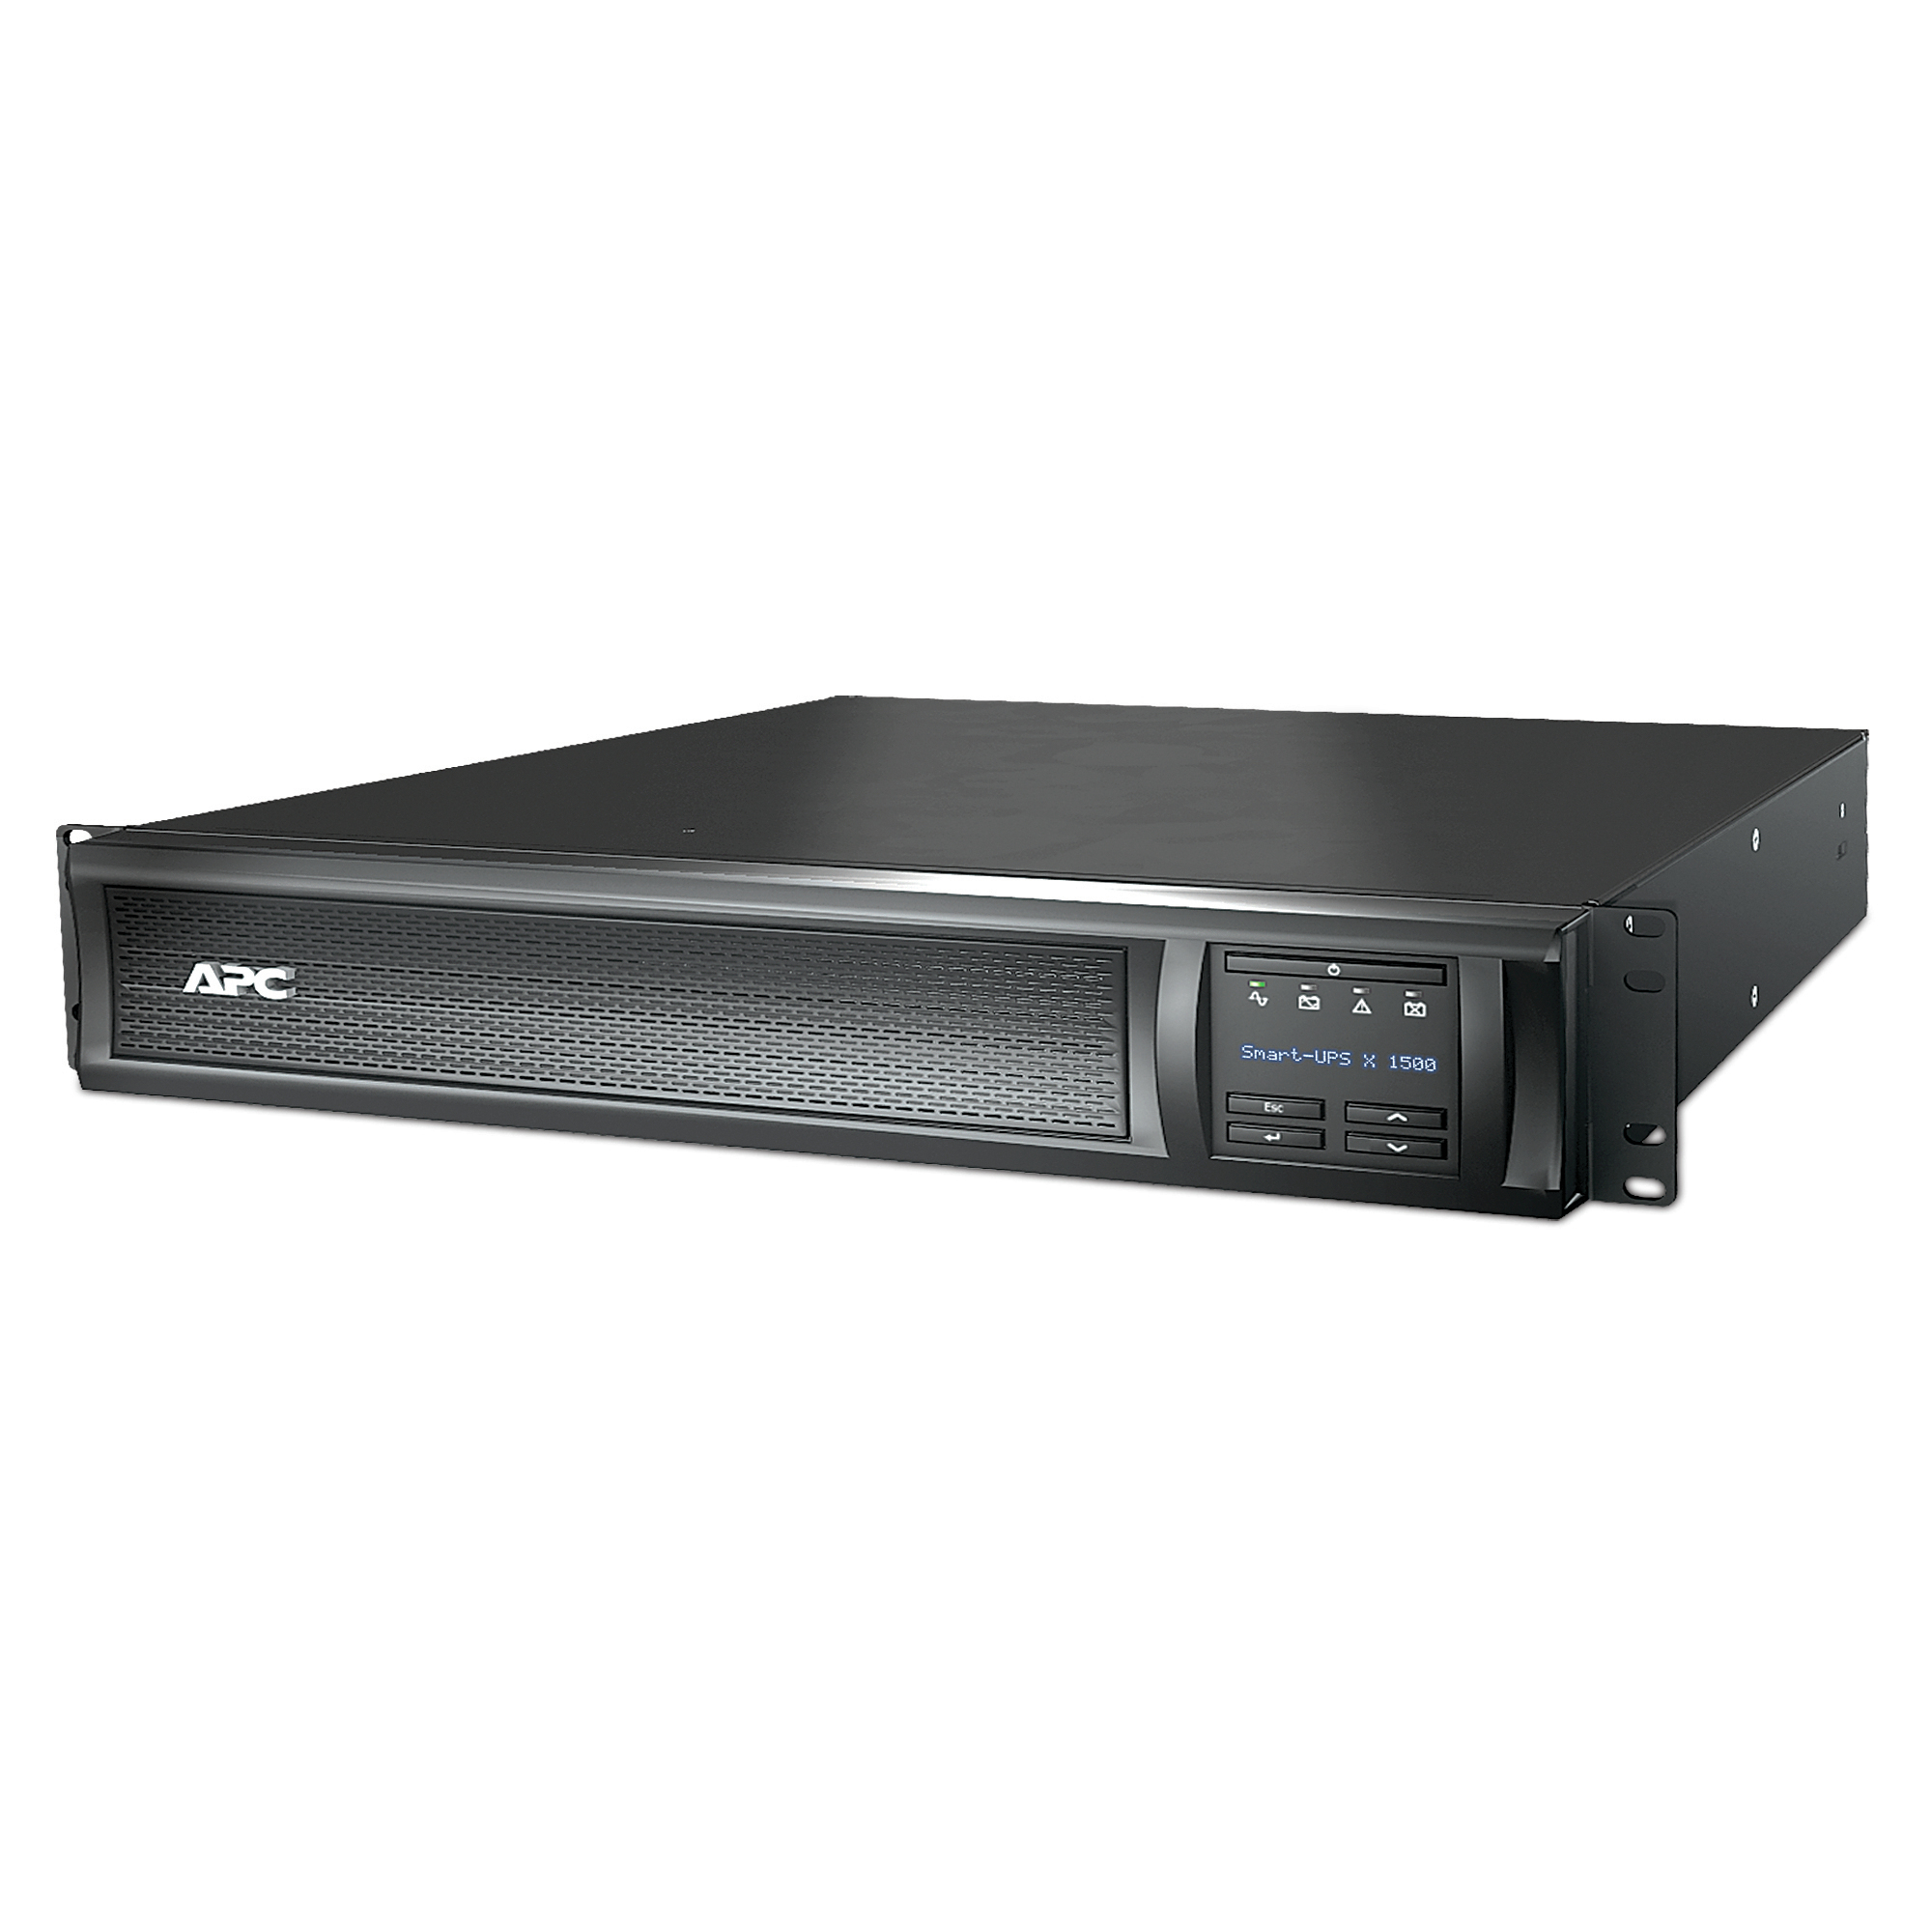 APC Smart-UPS X 1500VA Rack/Tower LCD 230V With Network Card SMX1500RMI2UNC - C2000